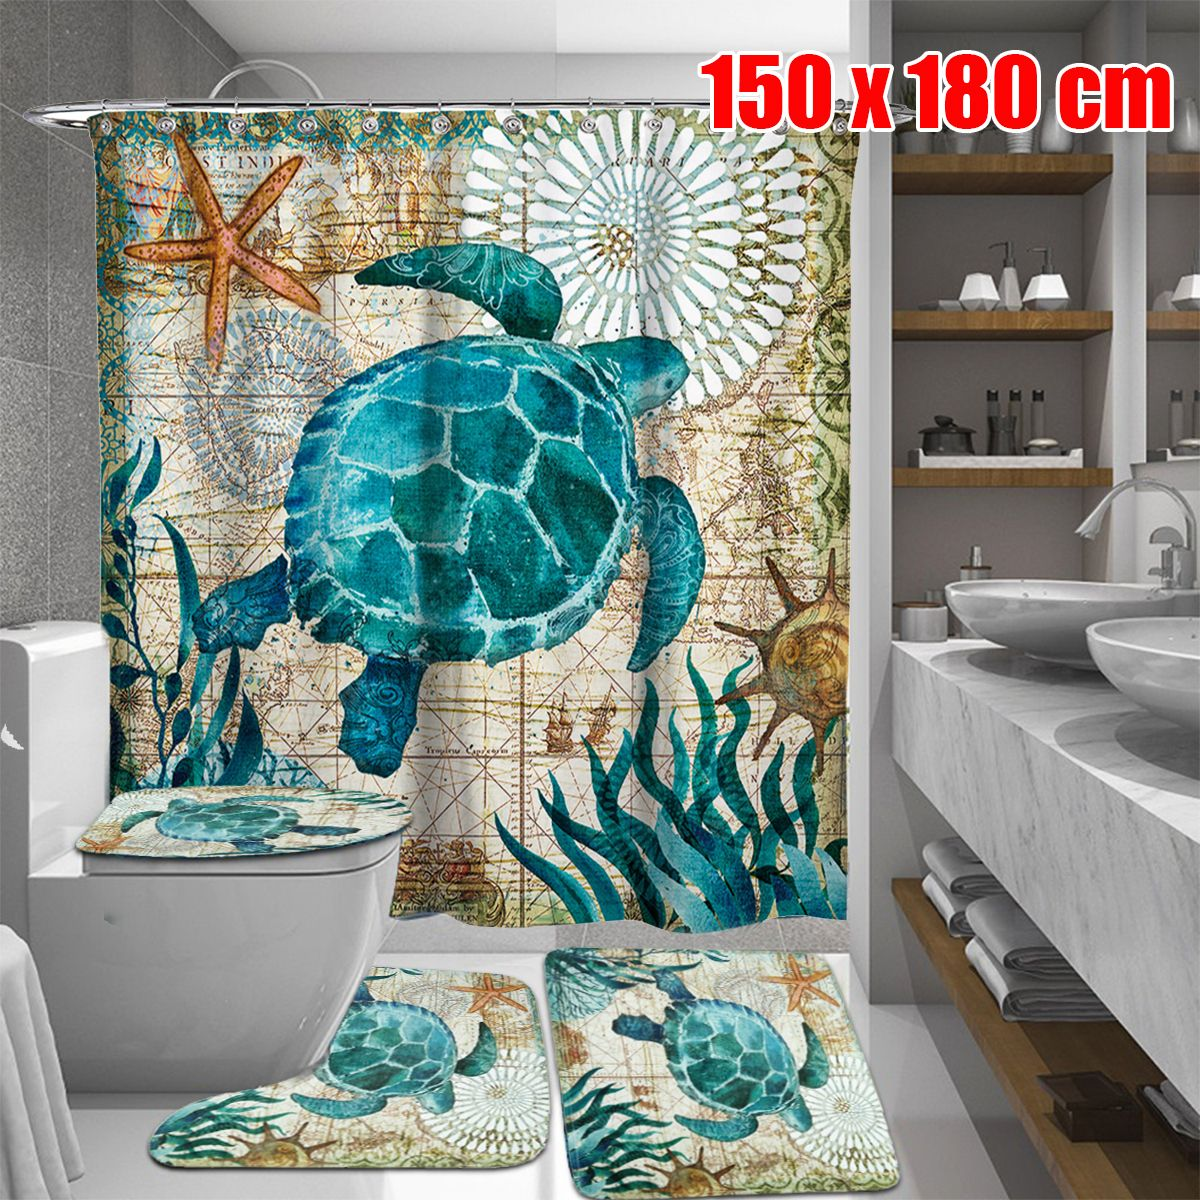 Sea Turtles Waterproof Bathroom Shower Curtain Toilet Cover Mat Non-Slip Rug Set